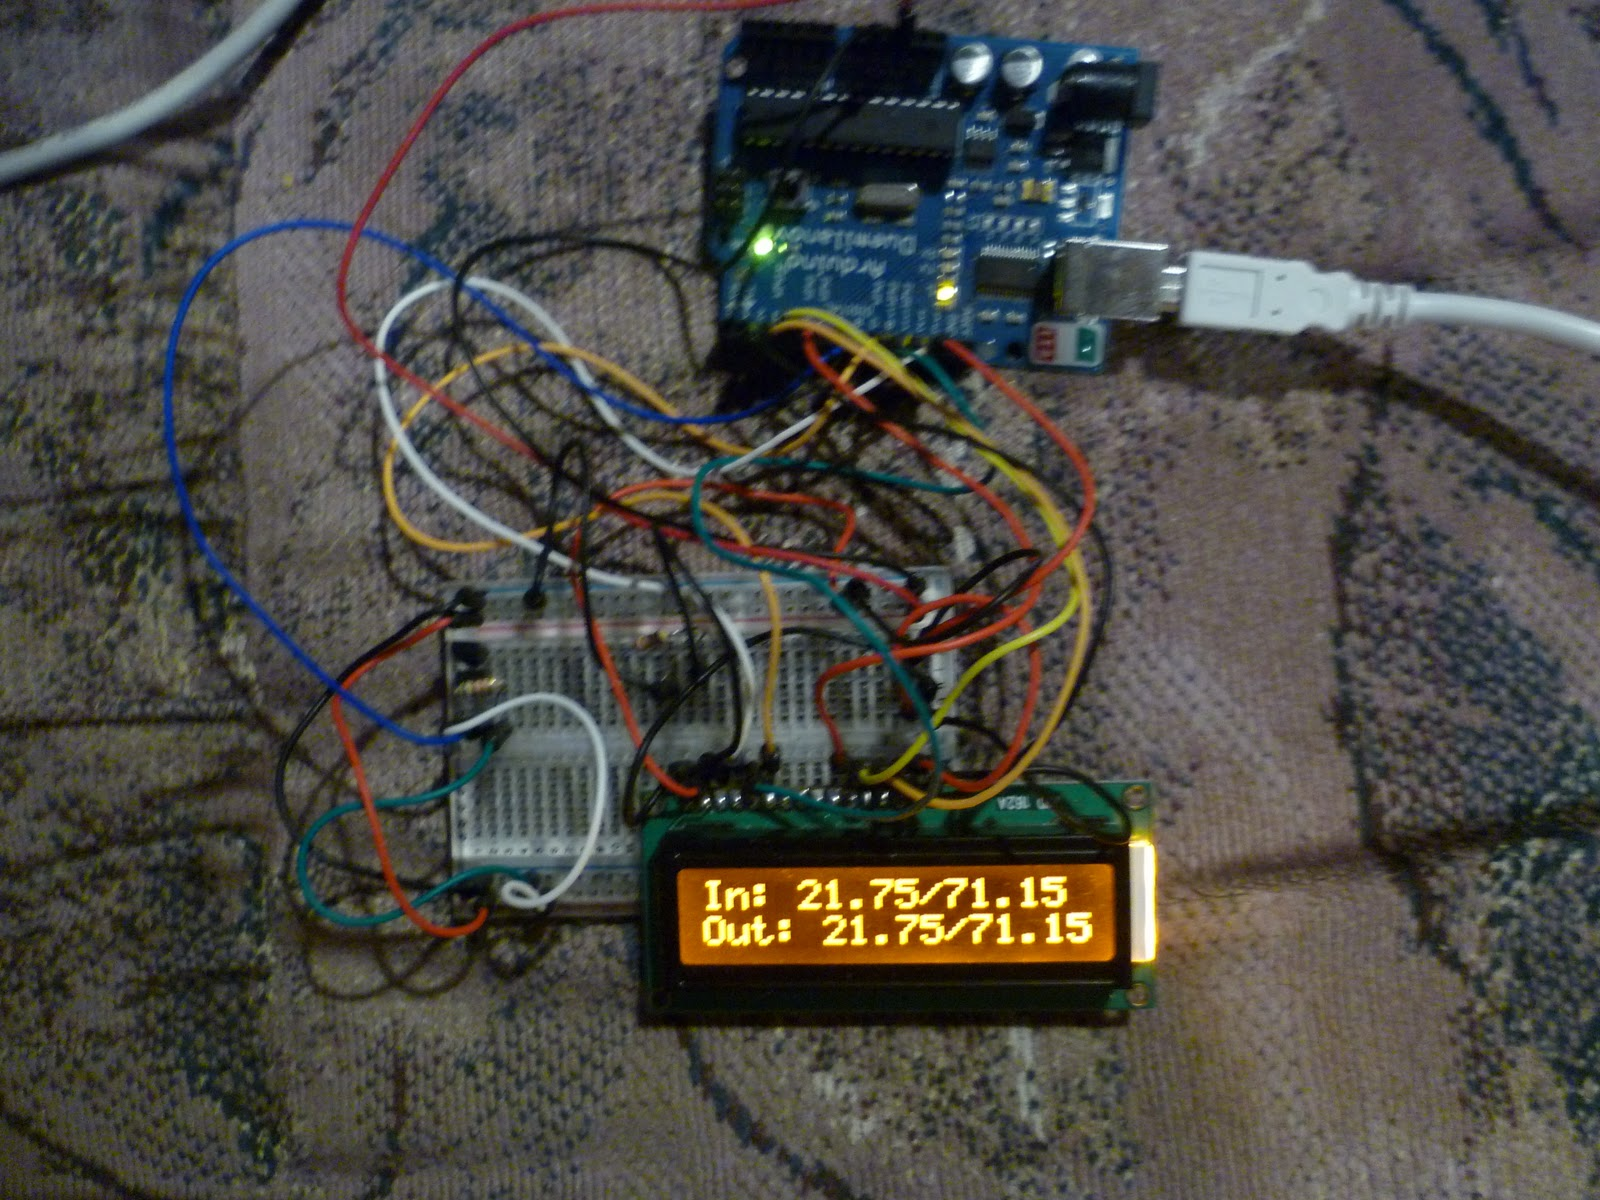 Arduino Your Home Environment 2010 Weight Scale Load Cell Interface Software Hx711 Lib Wiring We Are Finally Posting Our Multi Ds18b20 Temp Sensor Lcd Project Right Now Monitoring Two Sensors On One Data Pin But Could Add Many Such